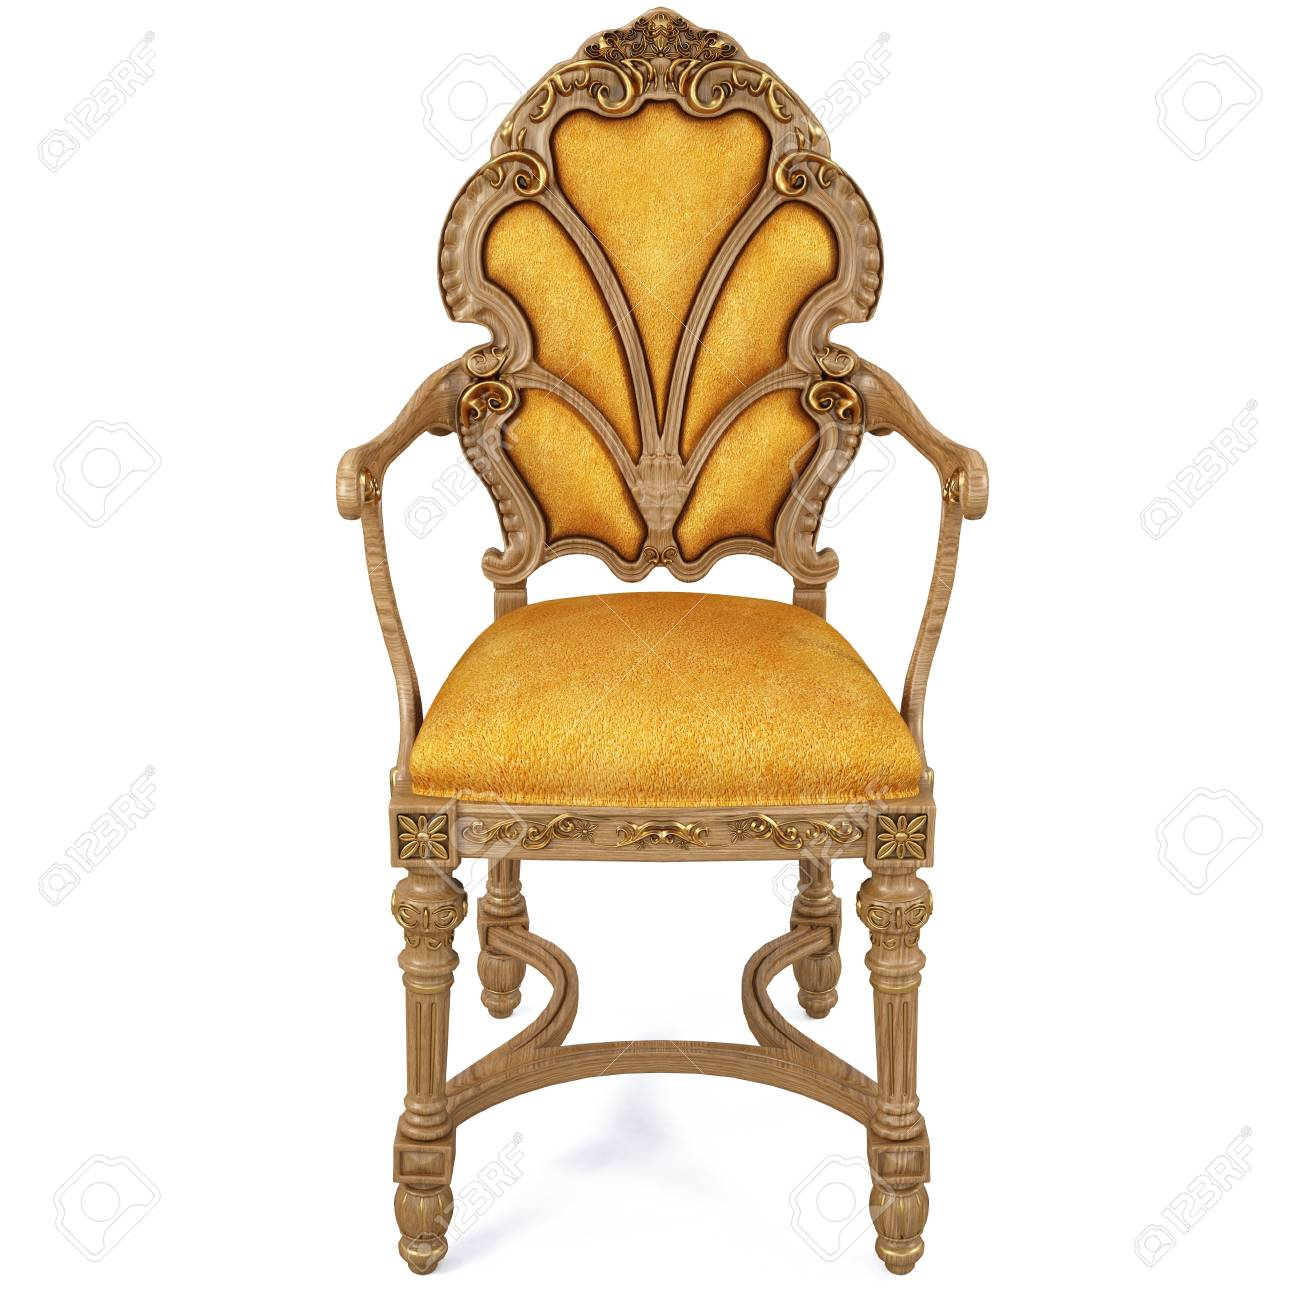 beautiful classic chair. isolated on white. Stock Photo - 7311457